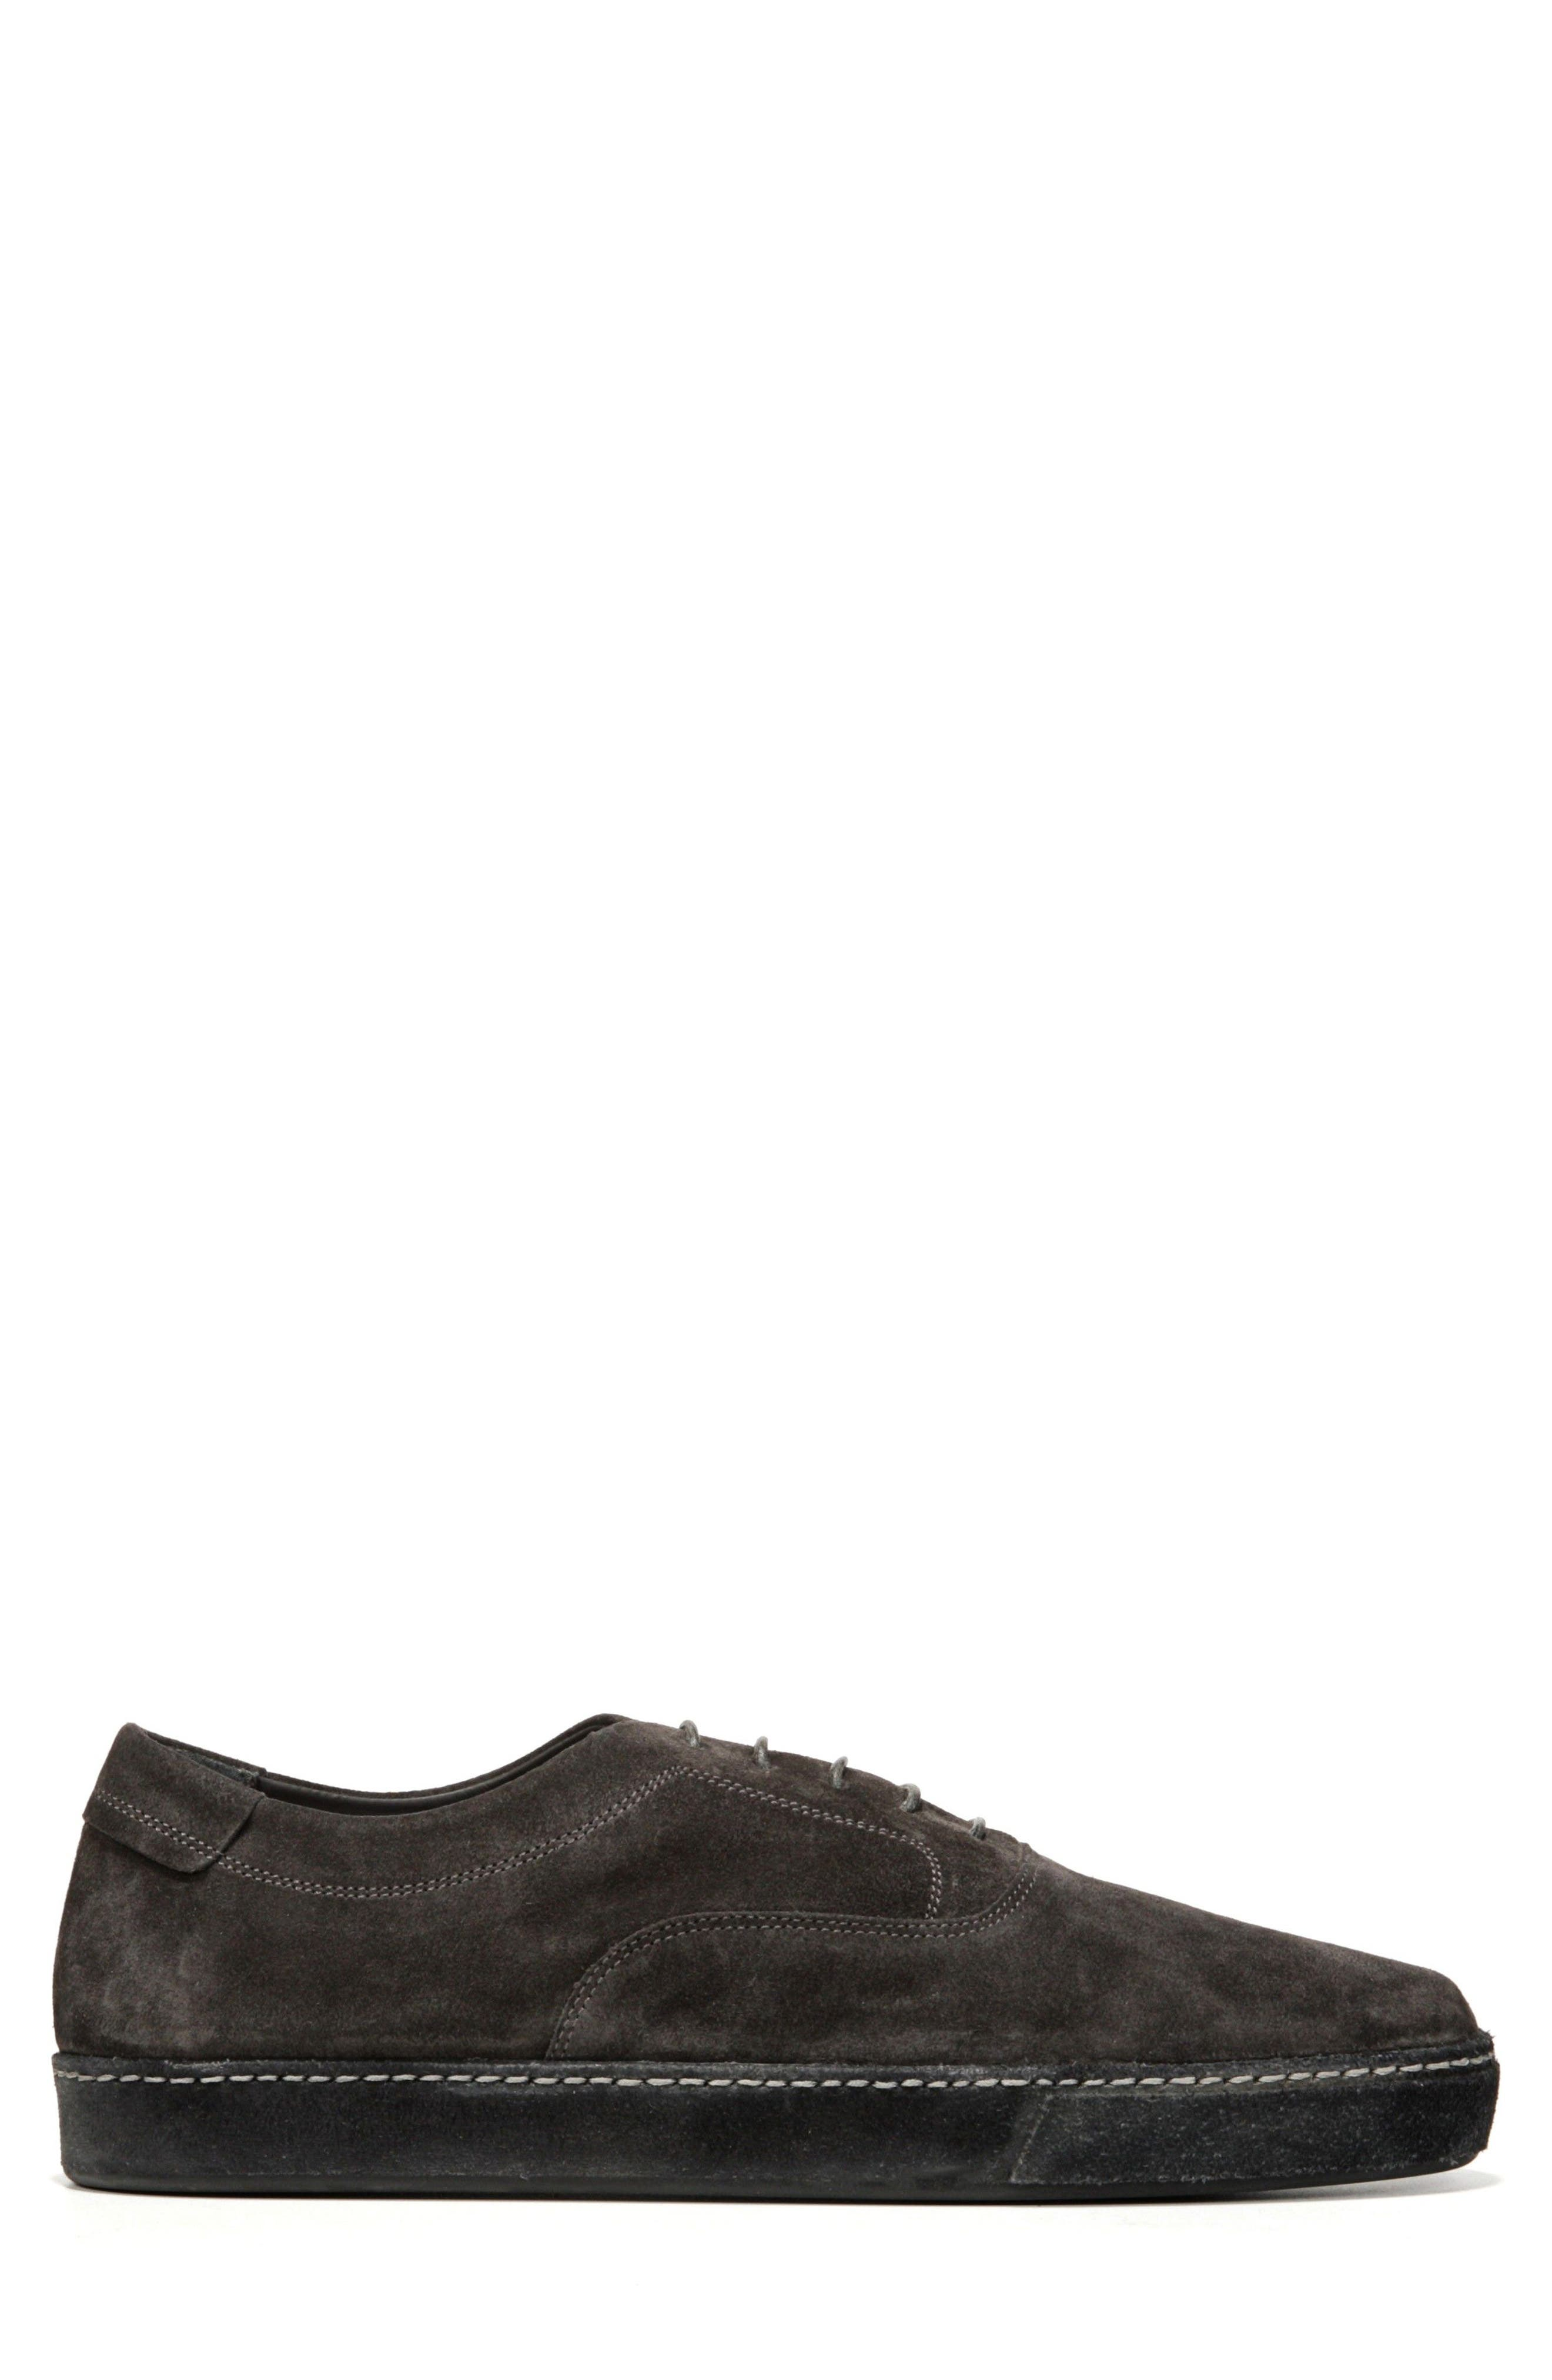 Norris Plain Toe Oxford,                             Alternate thumbnail 3, color,                             021